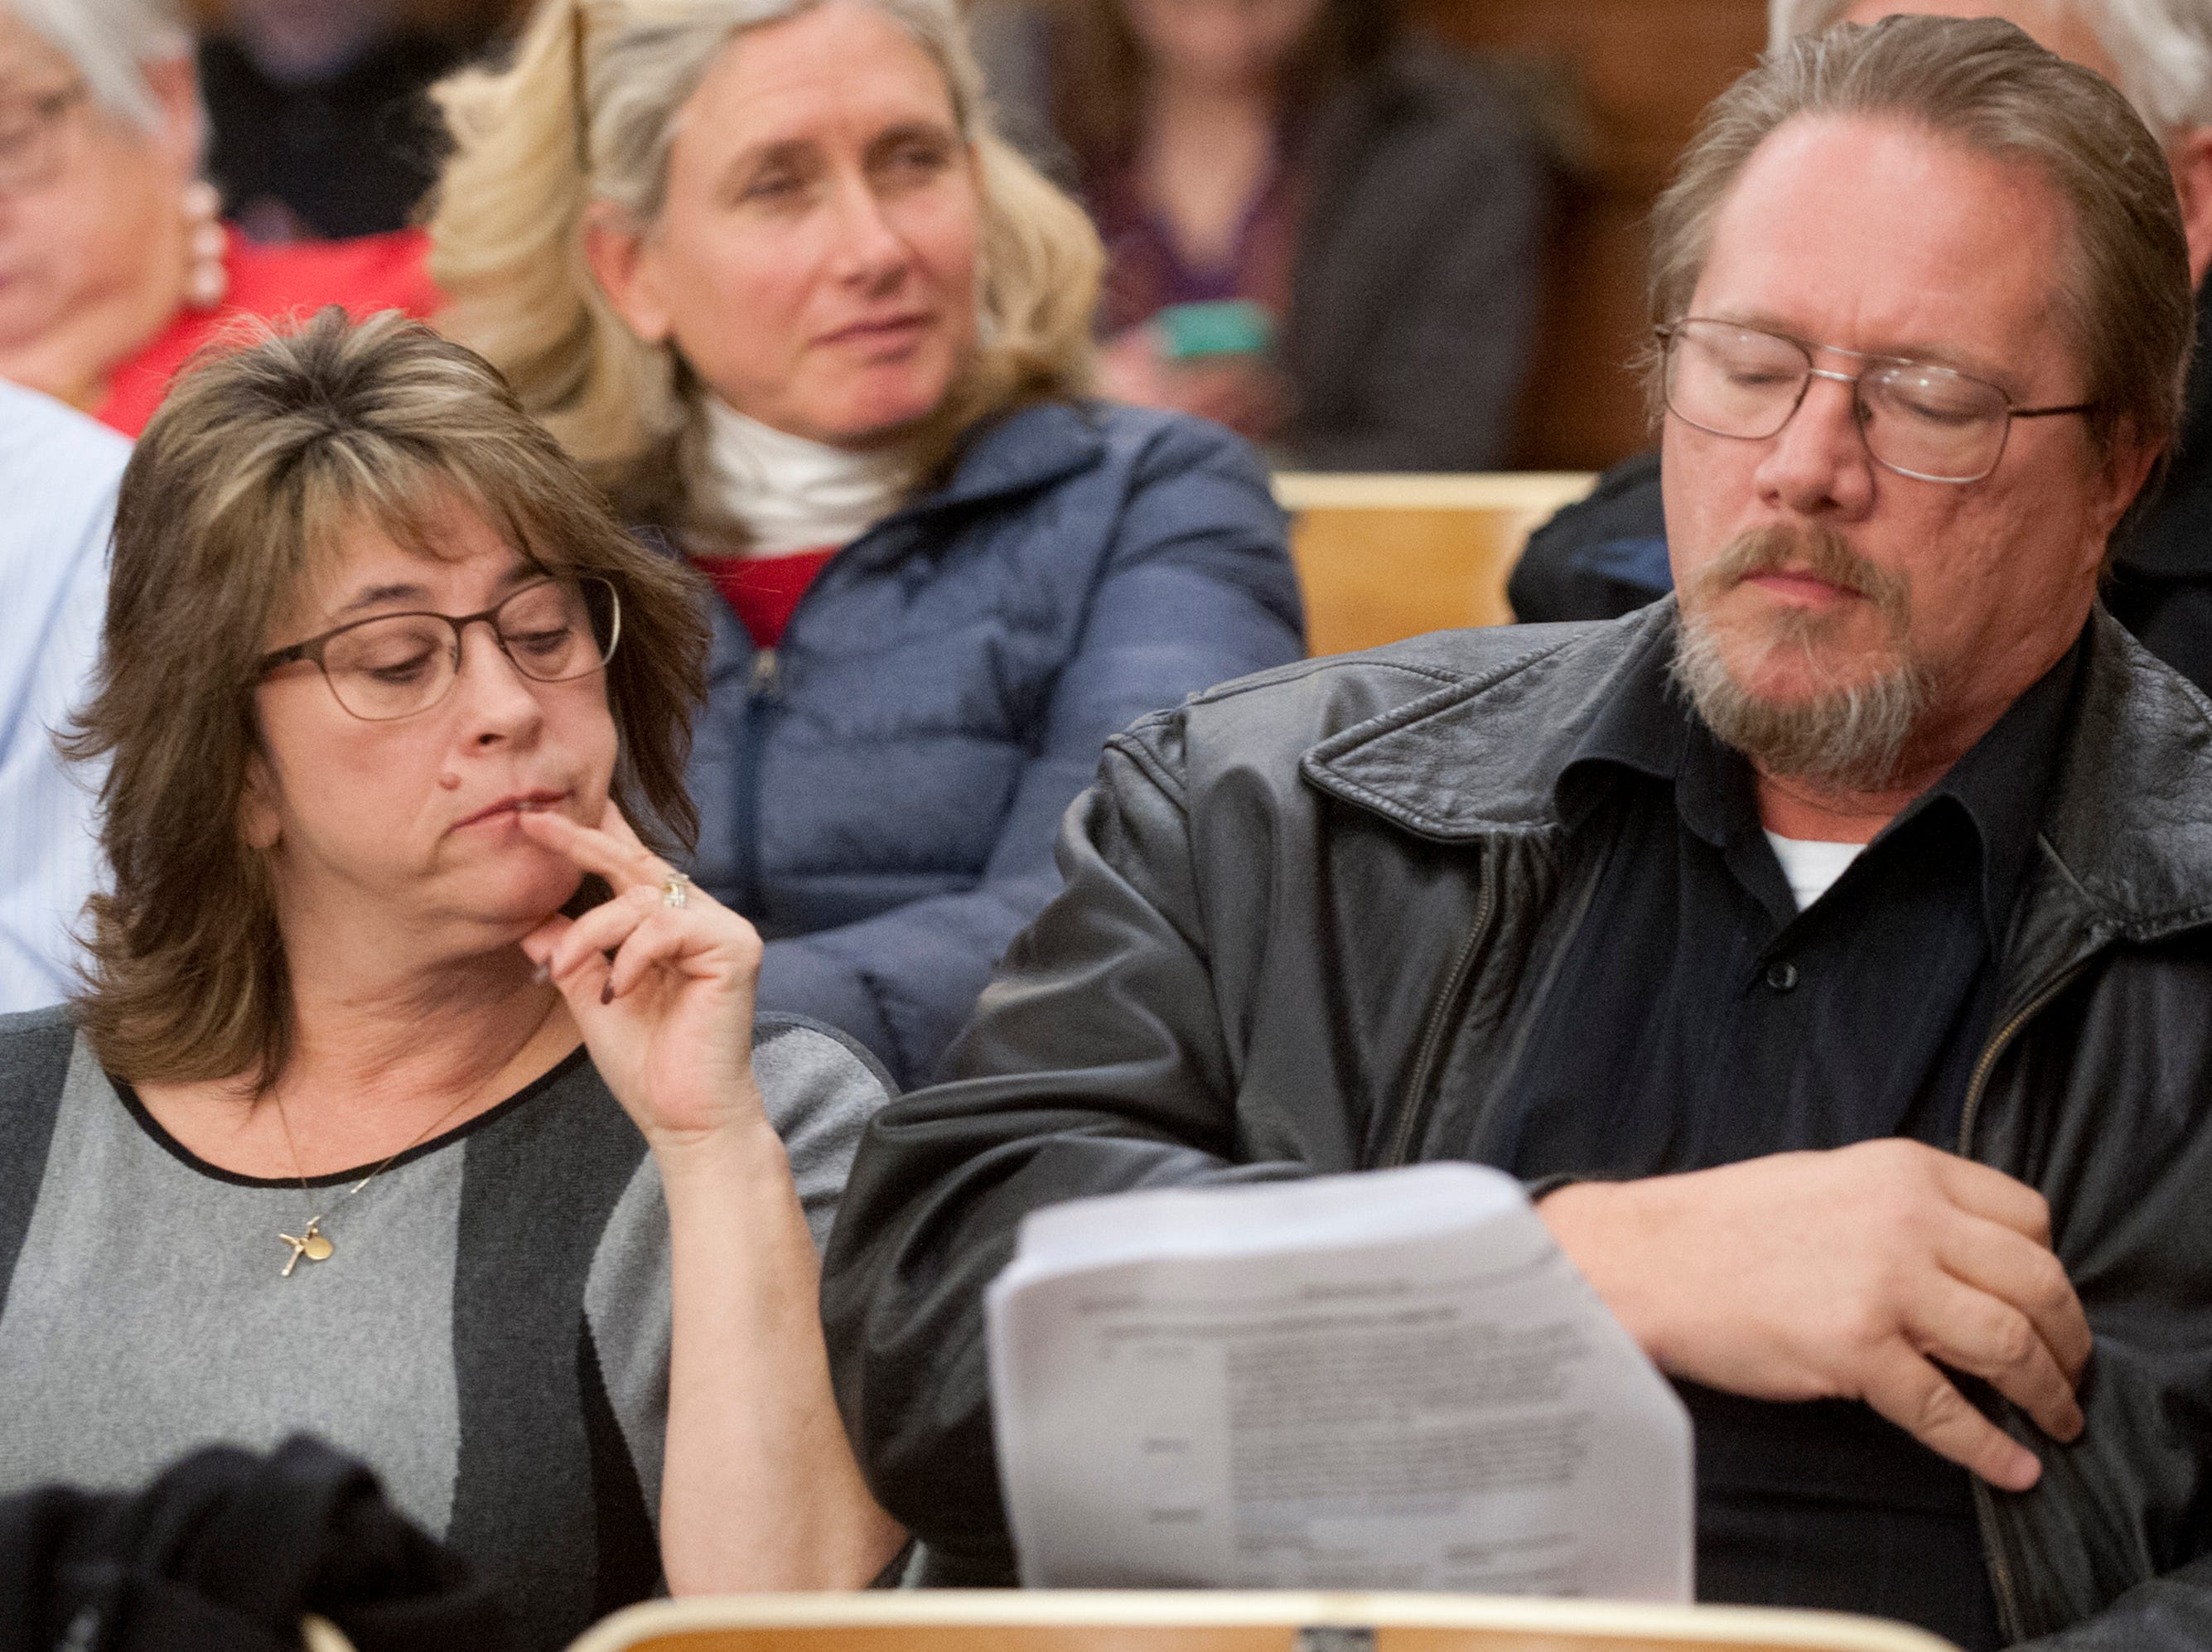 Hurstbourne homeowner Peggy Barber and her husband Bryan look over the Louisville Metro Council minutes prior to a council vote approving planning commission recommendations on Topgolf at the council's Nov. 29, 2018 meeting.